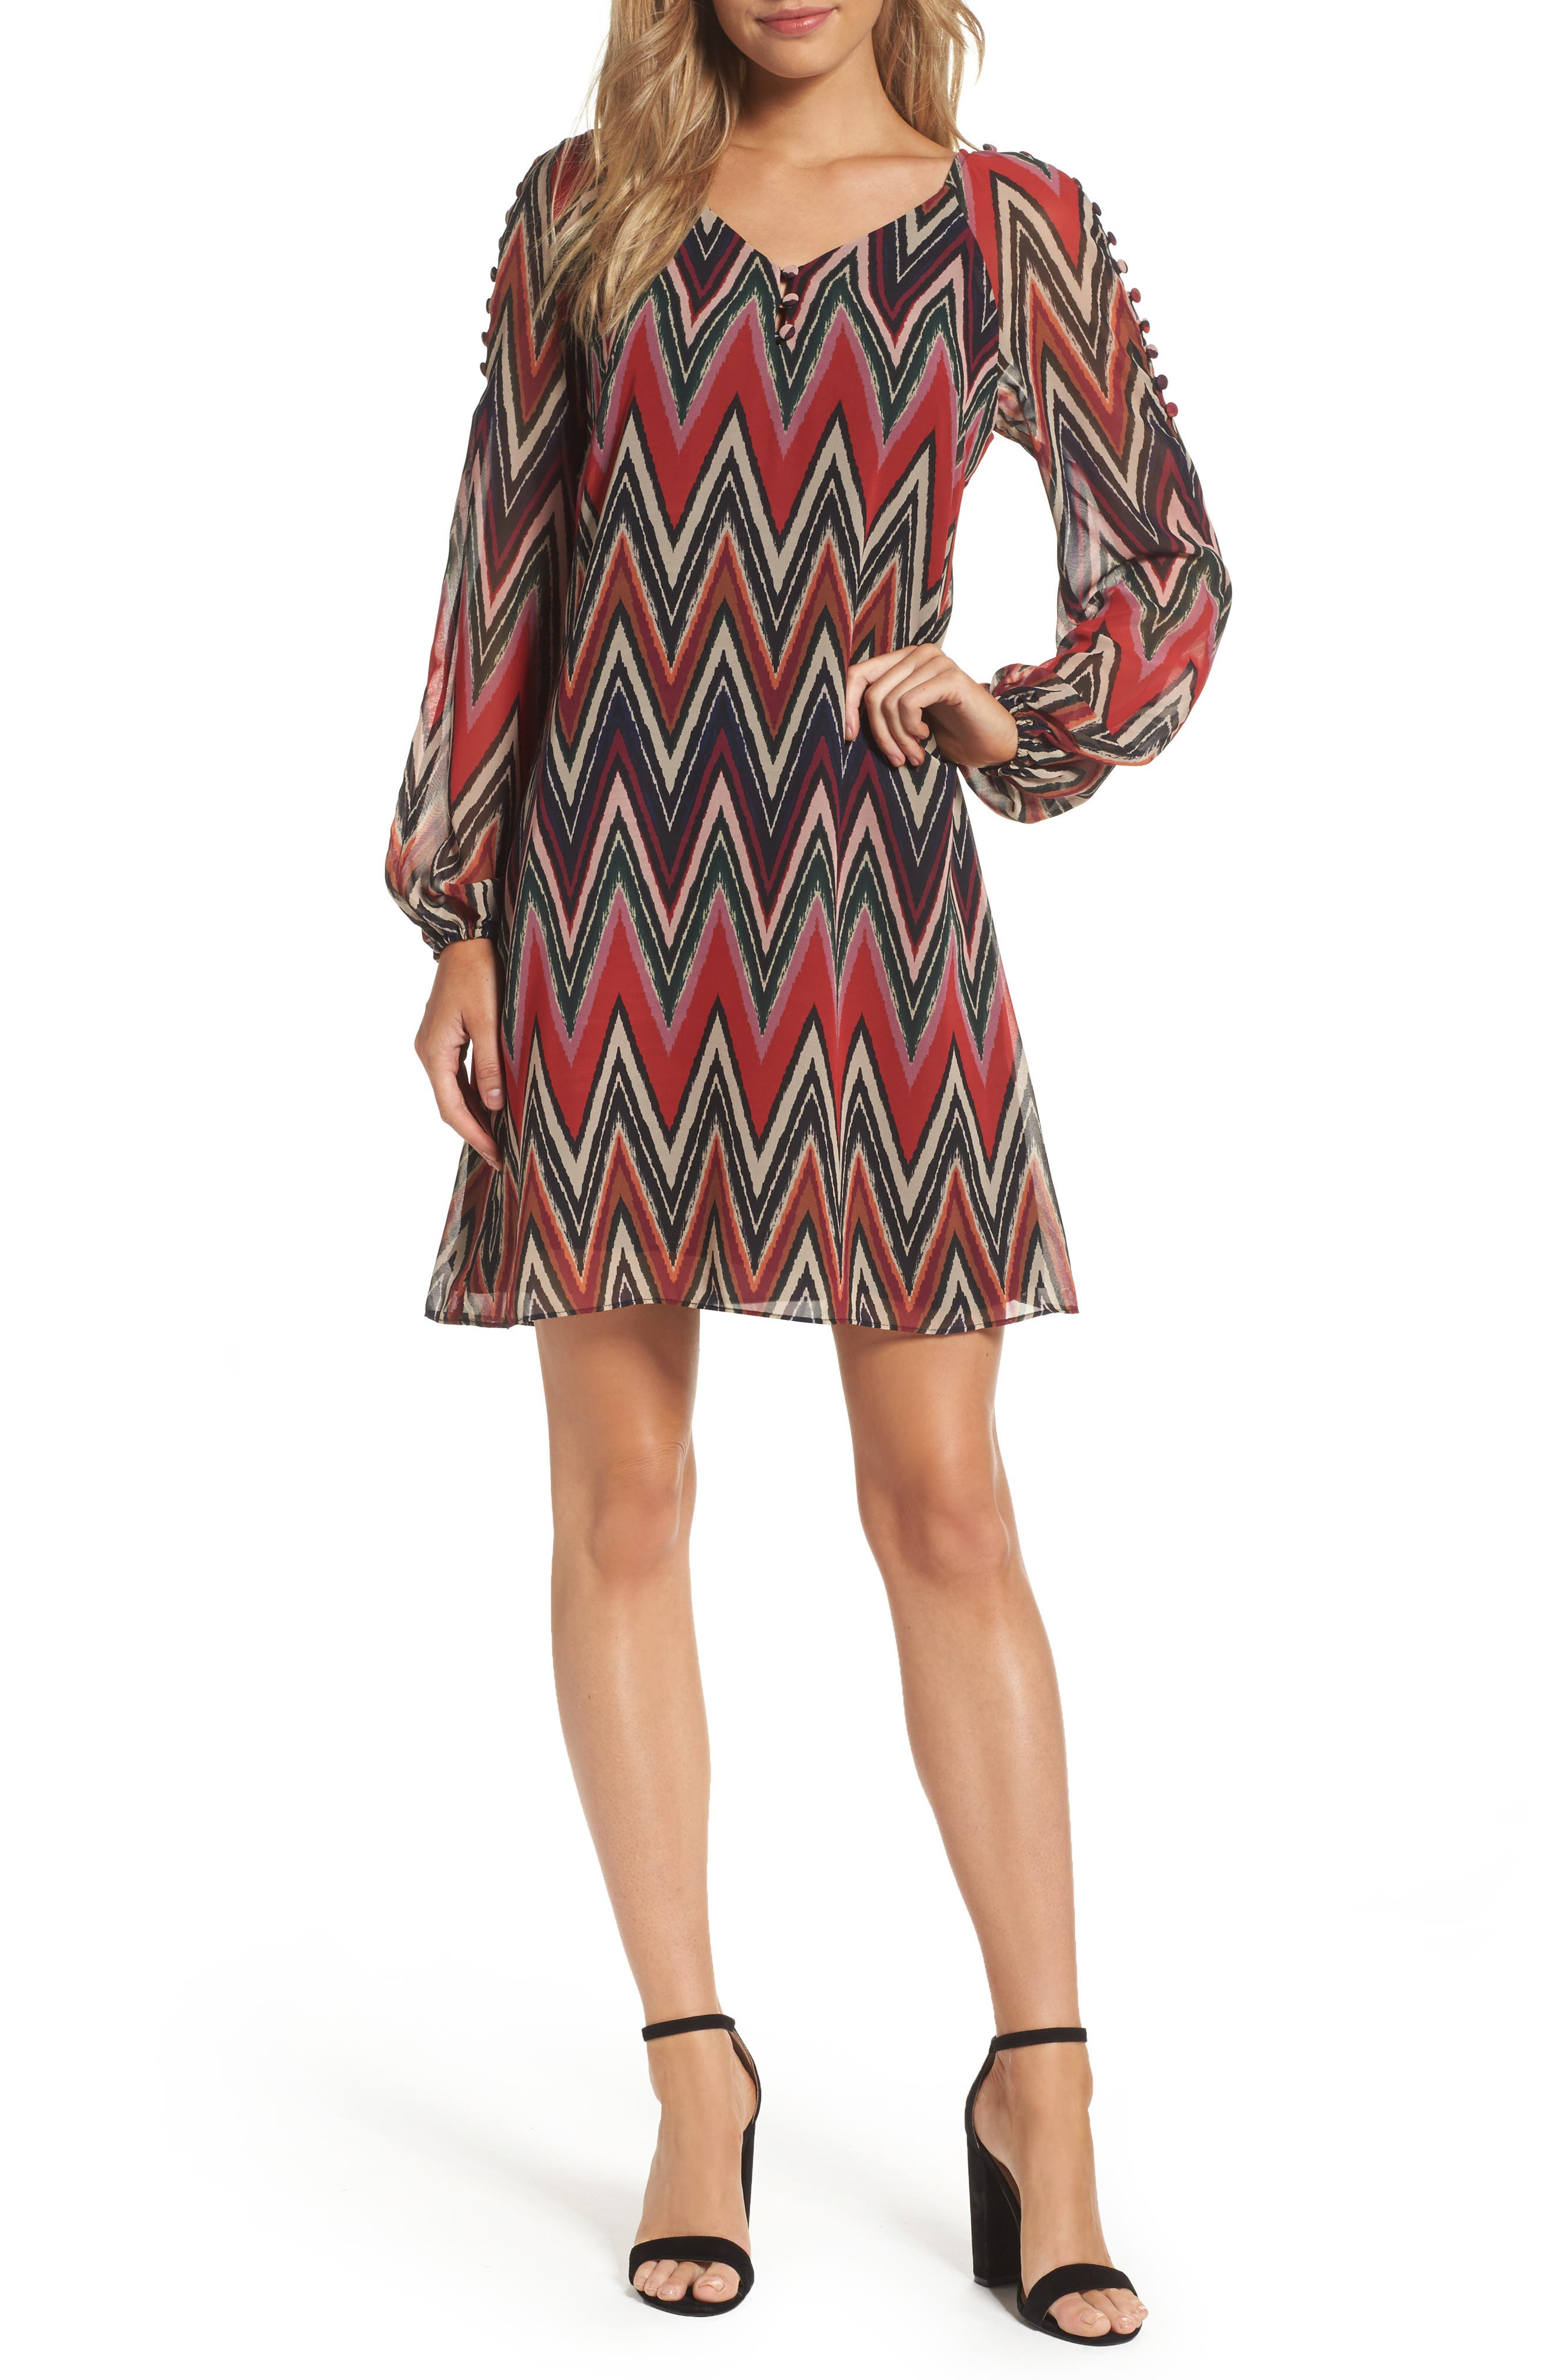 Chevron Swing Dress,                         Main,                         color, Red/ Black